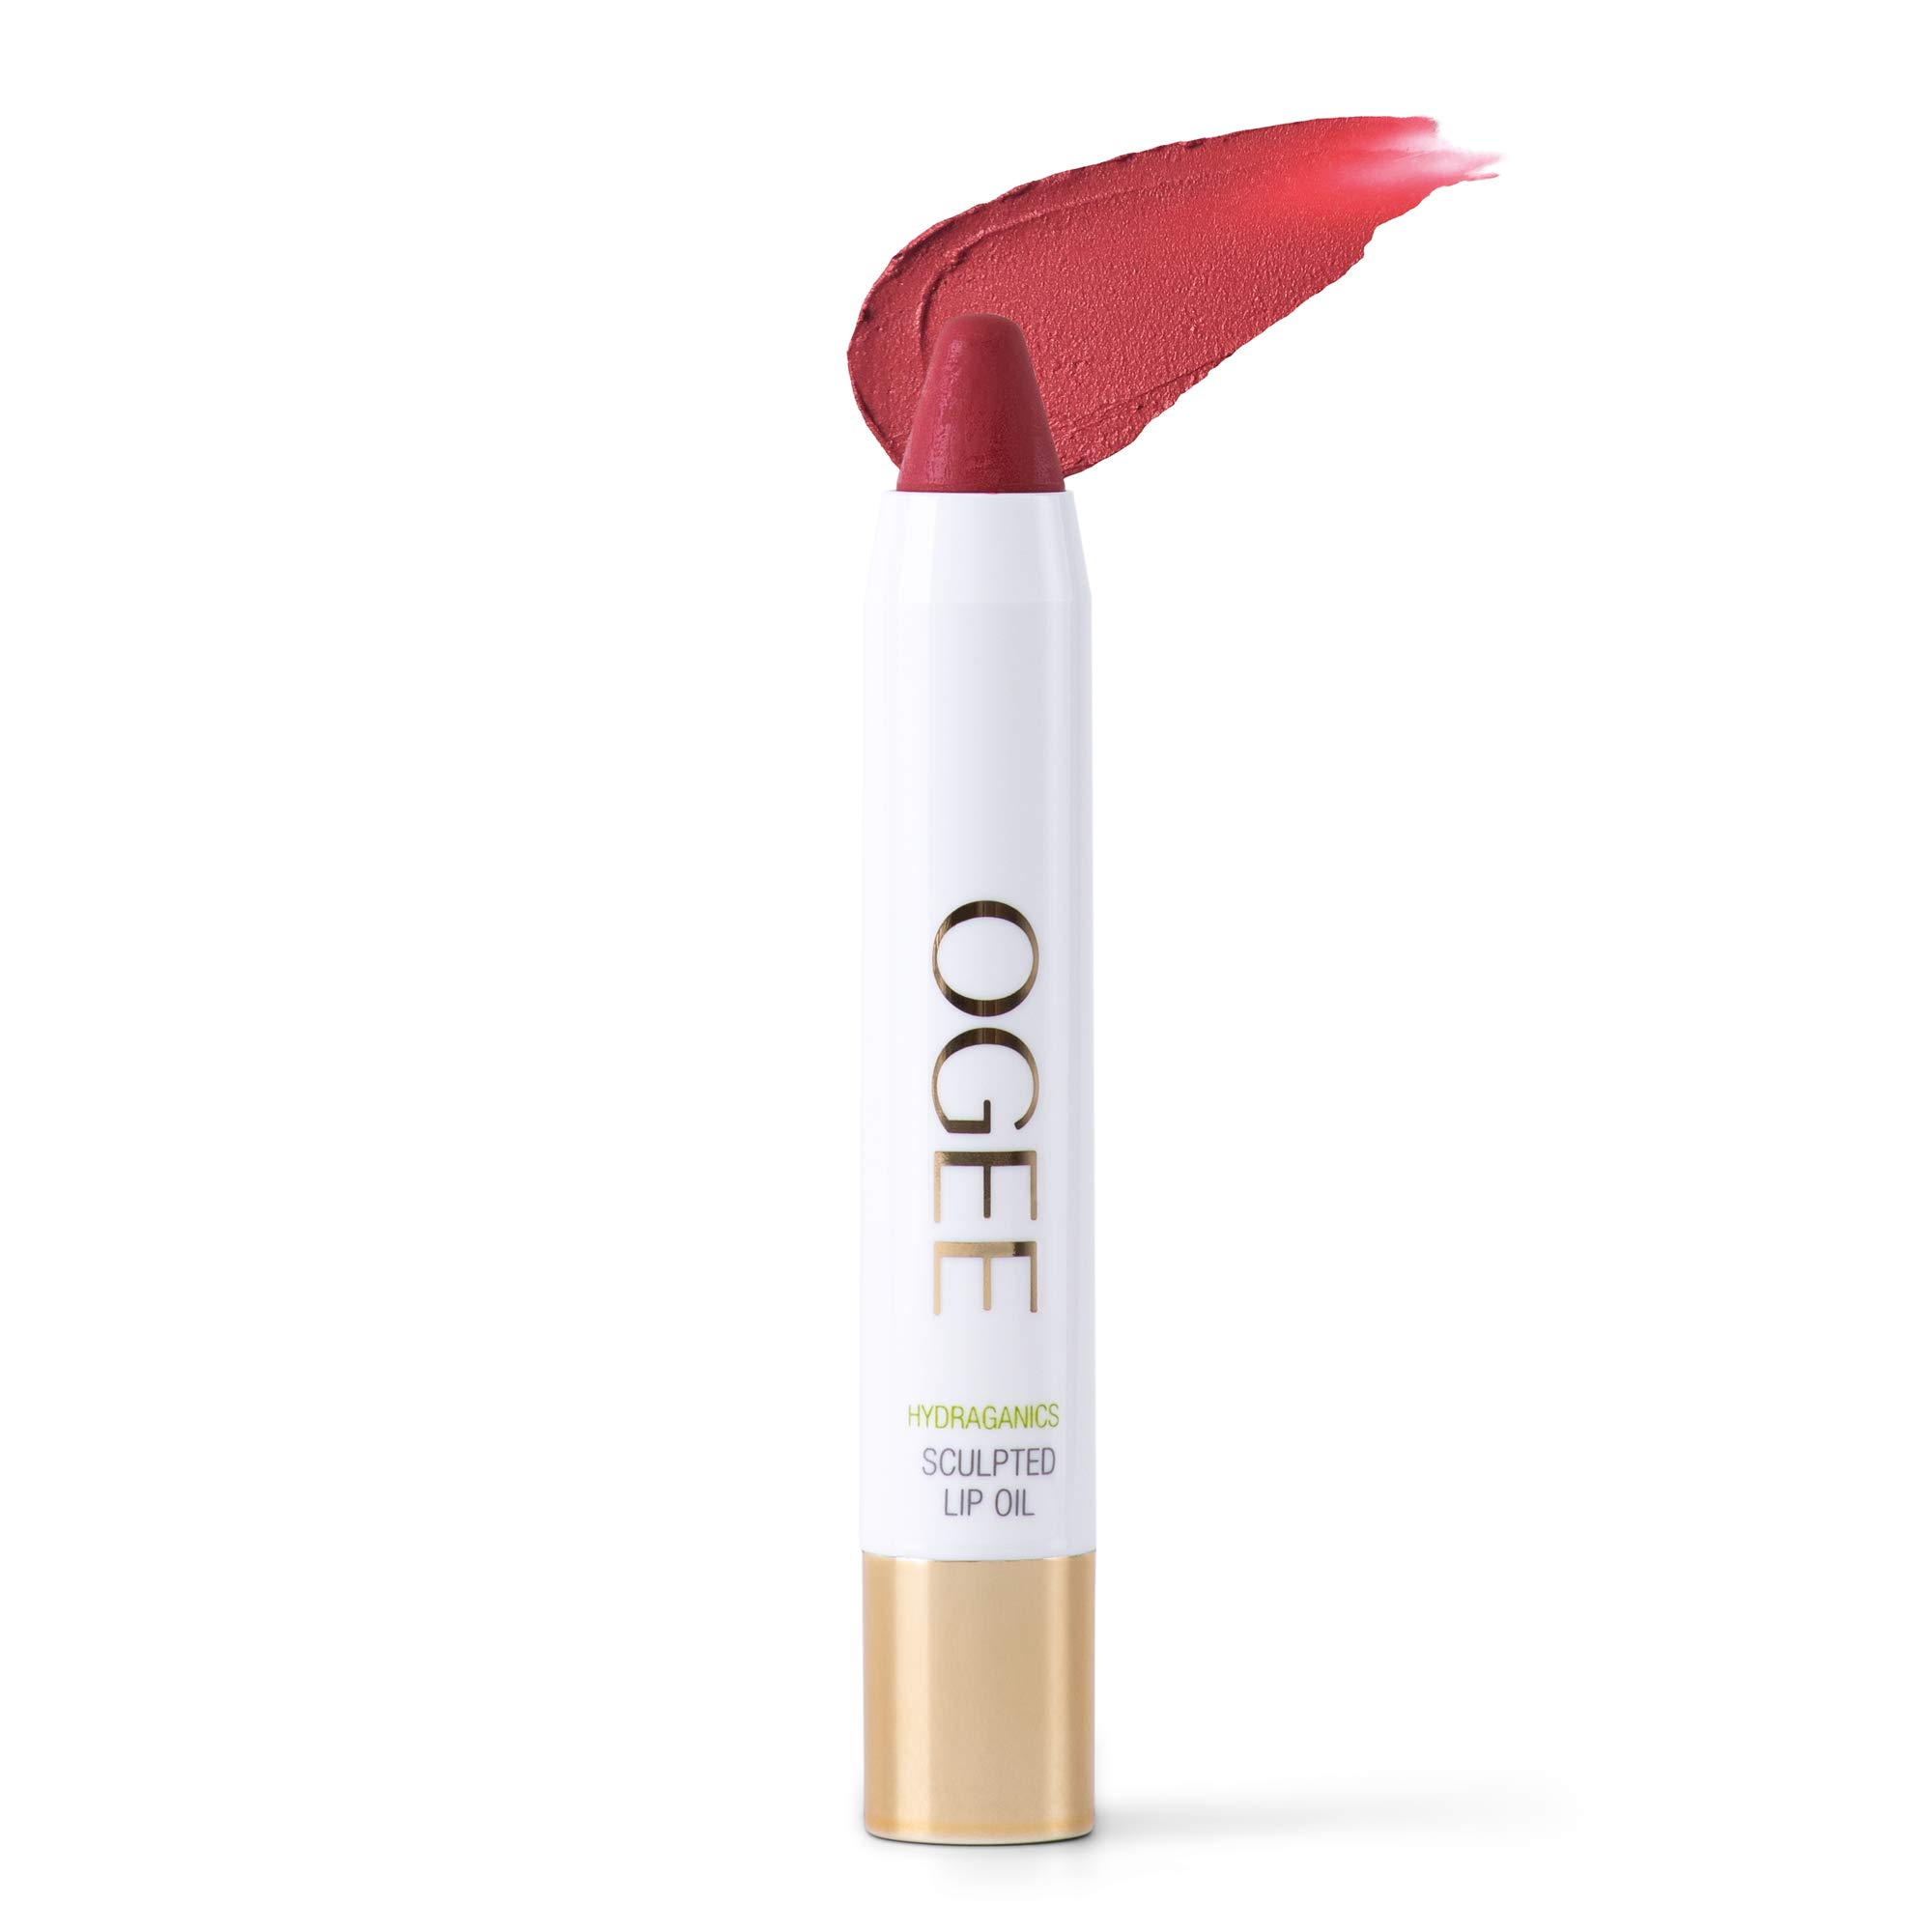 Ogee Tinted Sculpted Lip Oil - Made with 100% Organic Coconut Oil, Jojoba Oil, and Vitamin E - Best as Lip Balm, Lip Color or Lip Treatment - Zinnia